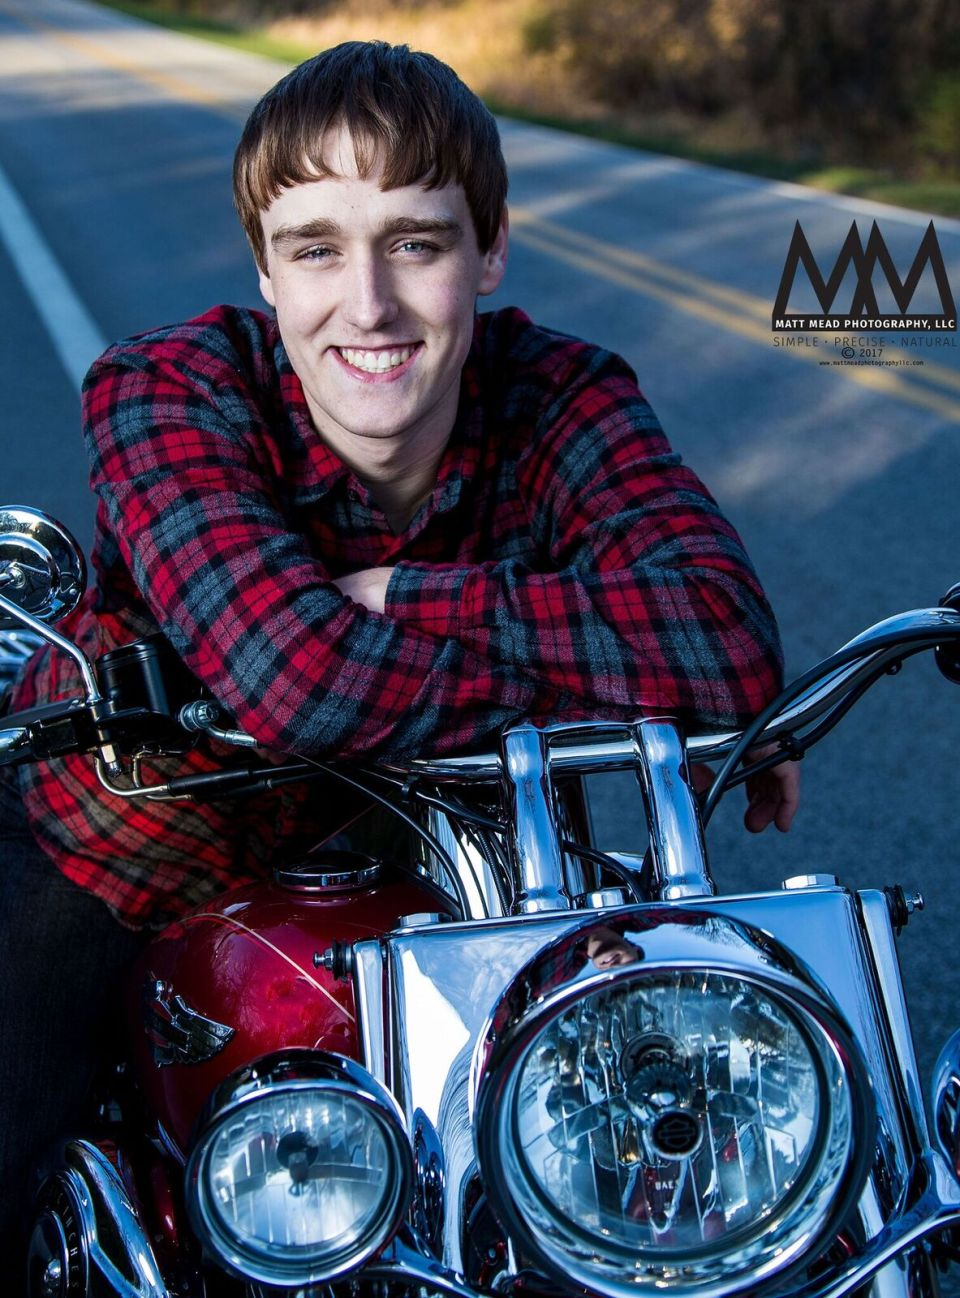 teen smiles while he rests on motorcycle handles for Erie PA senior portrait session at Presque Isle state Park